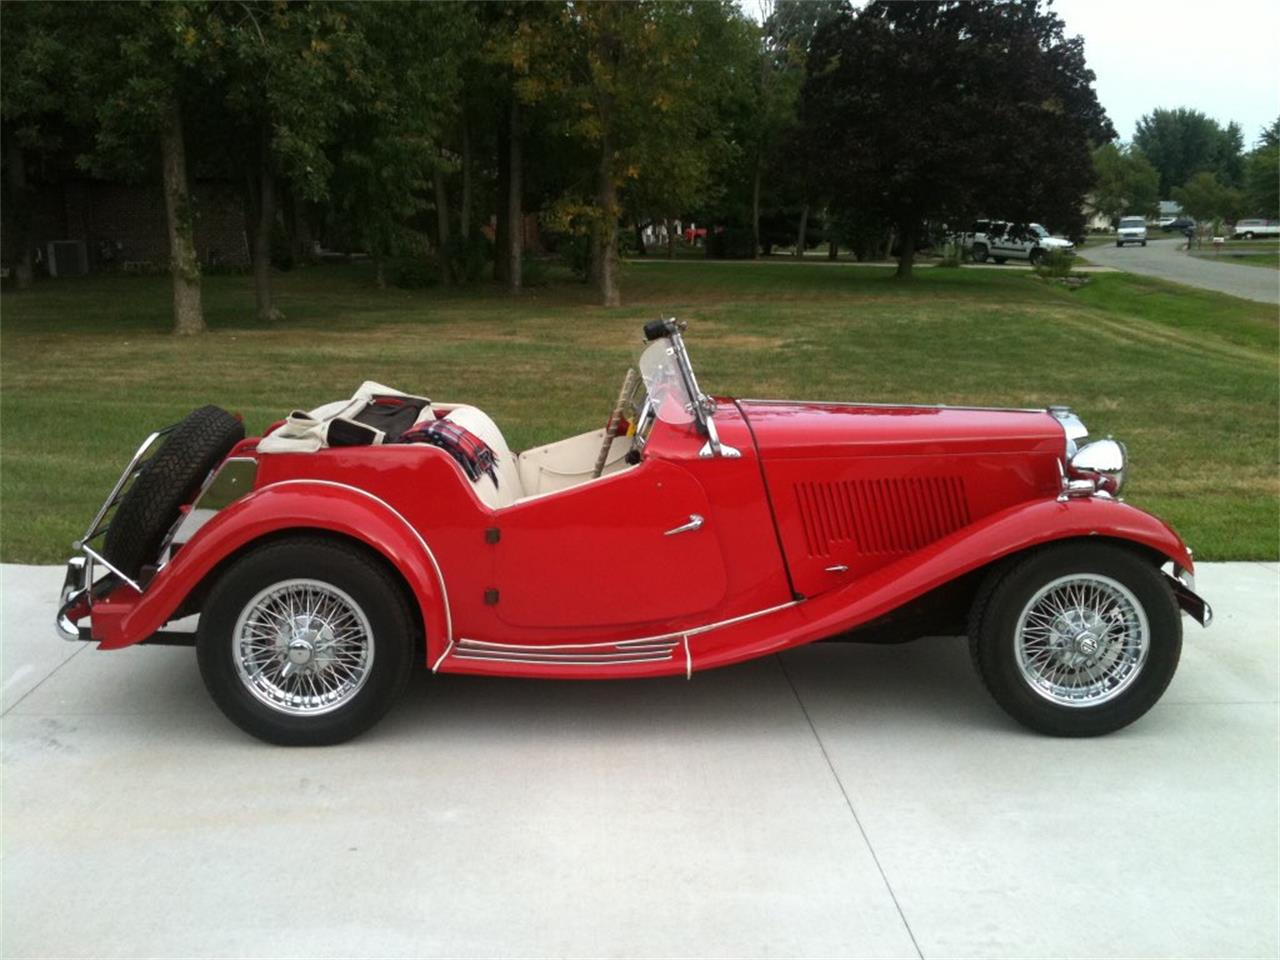 Large Picture of Classic '52 TD located in Michigan - $20,600.00 Offered by a Private Seller - OAOF